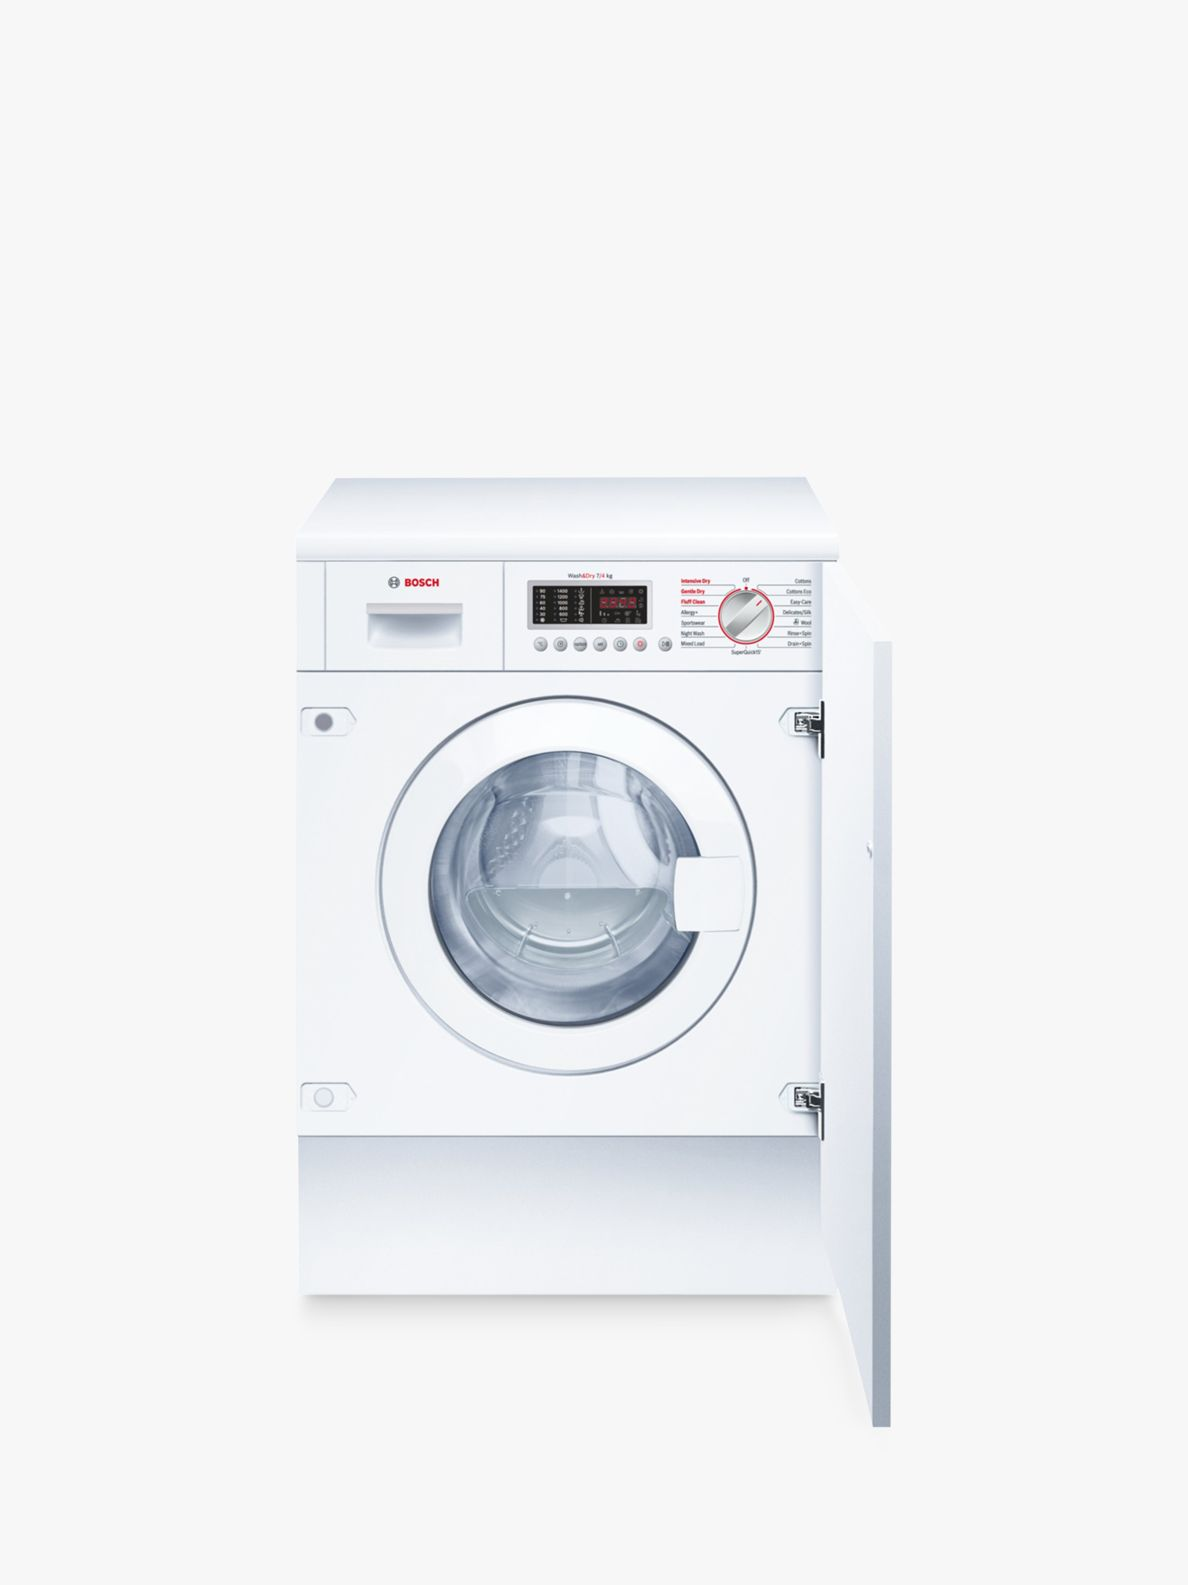 Bosch Bosch WKD28541GB Integrated Washer Dryer, 7kg Wash/4kg Dry Load, B Energy Rating, 1400rpm Spin